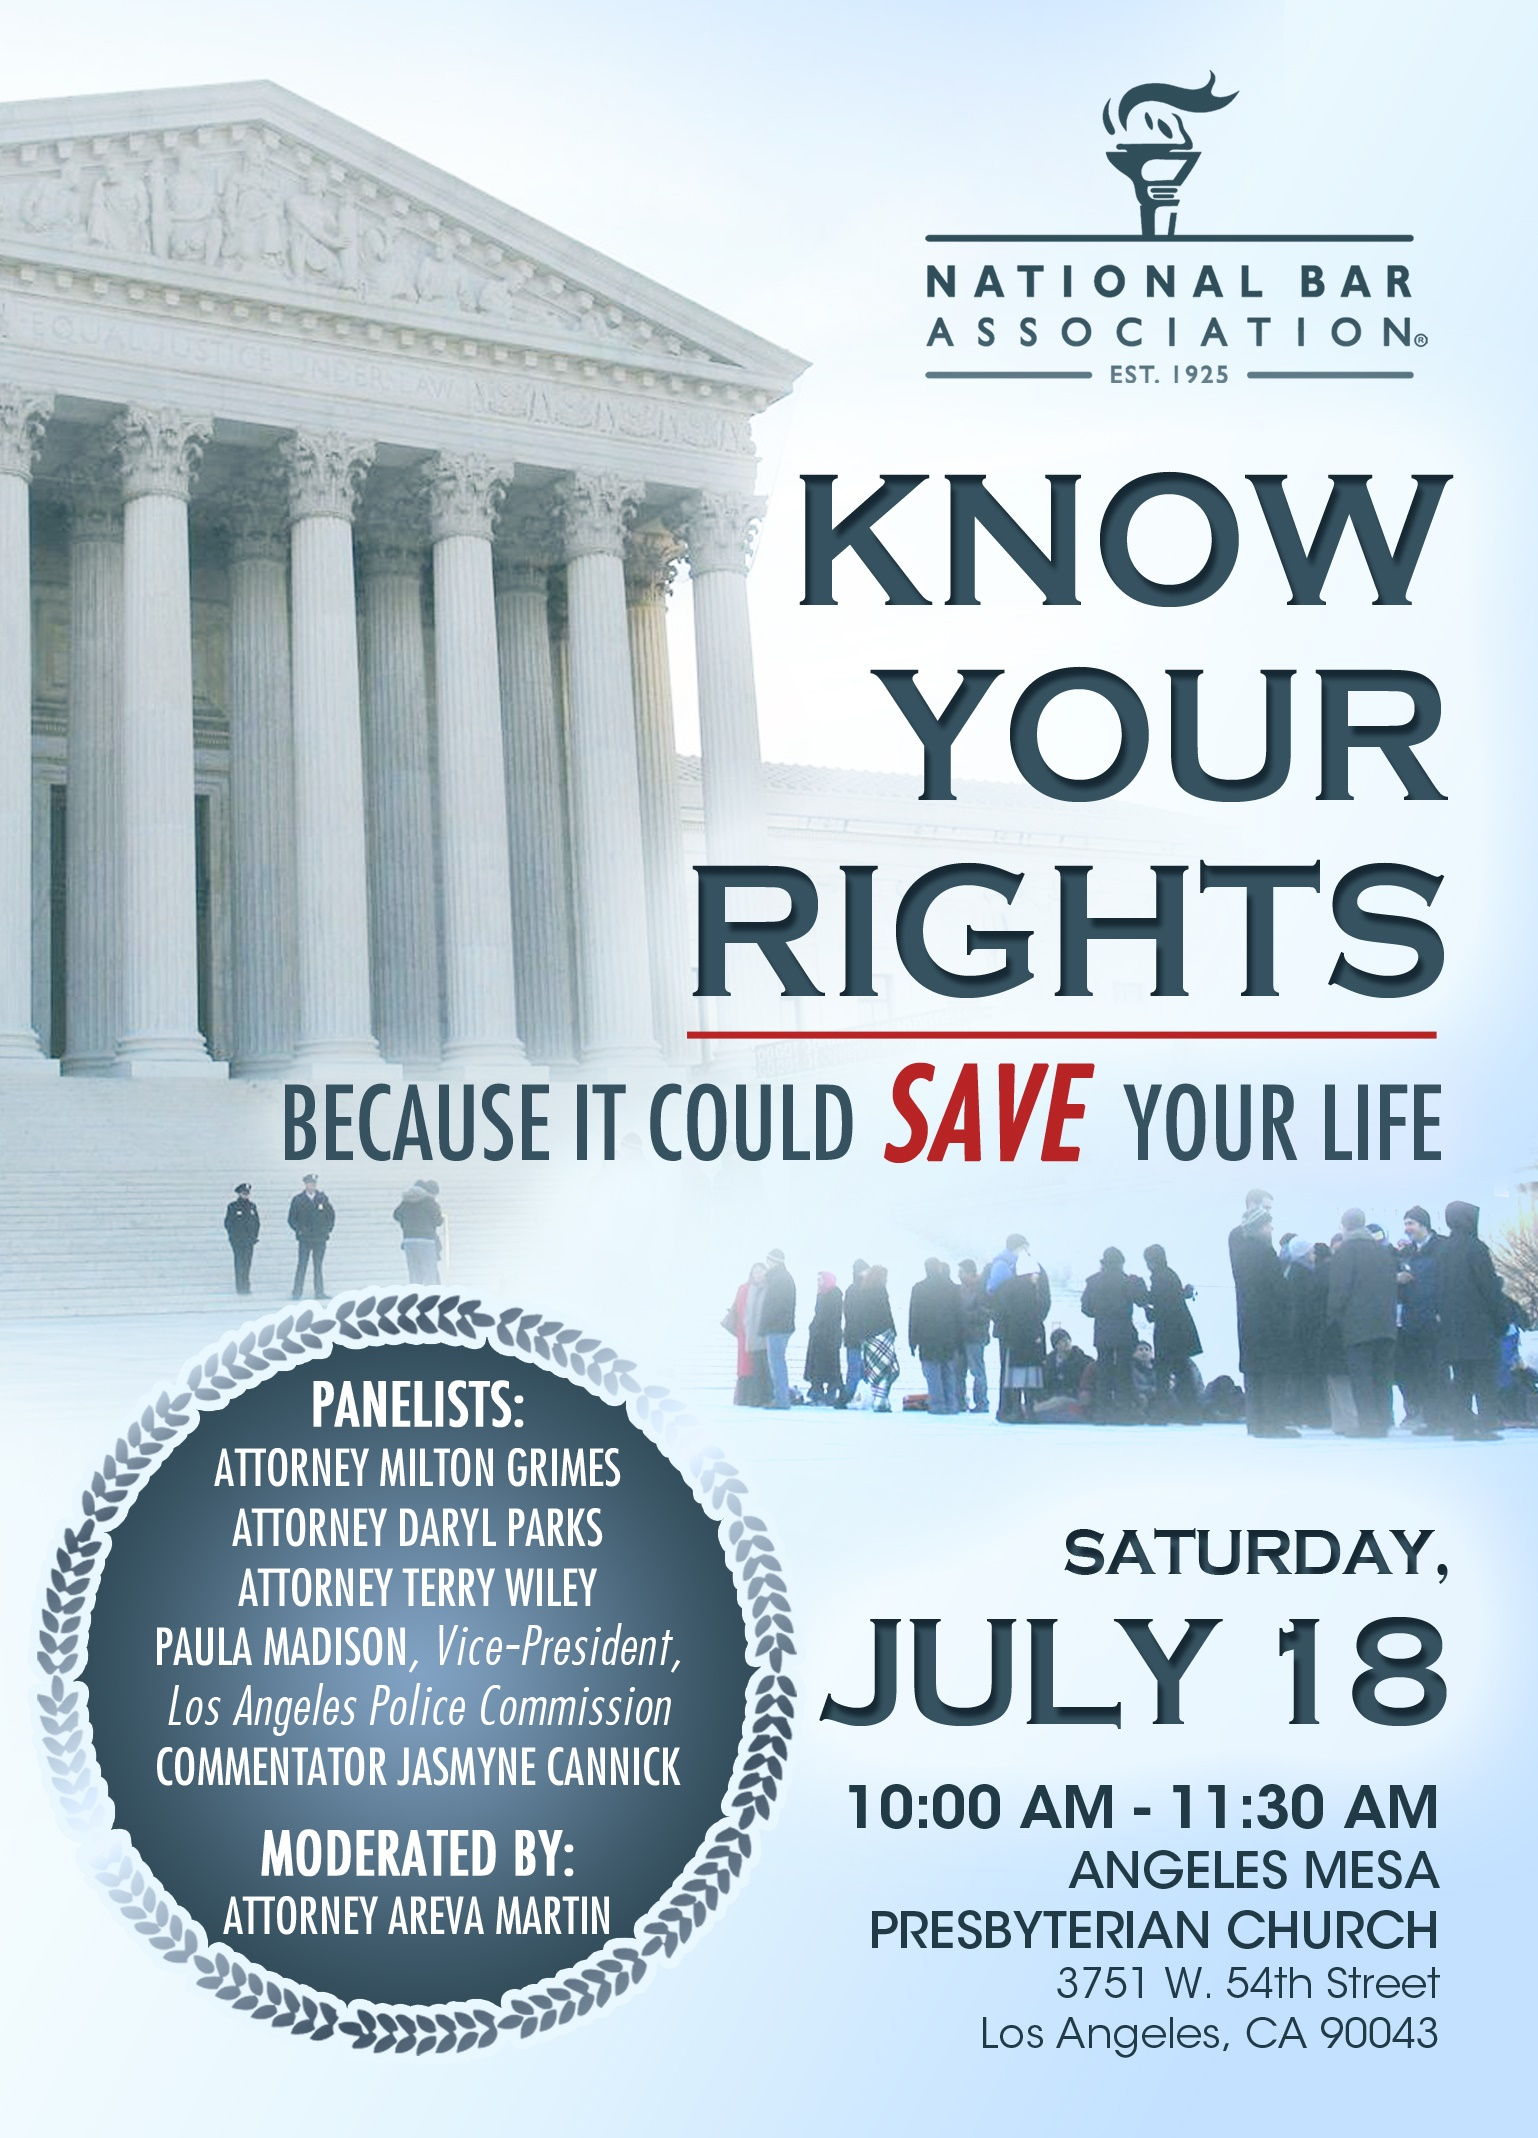 knowyourrights_print